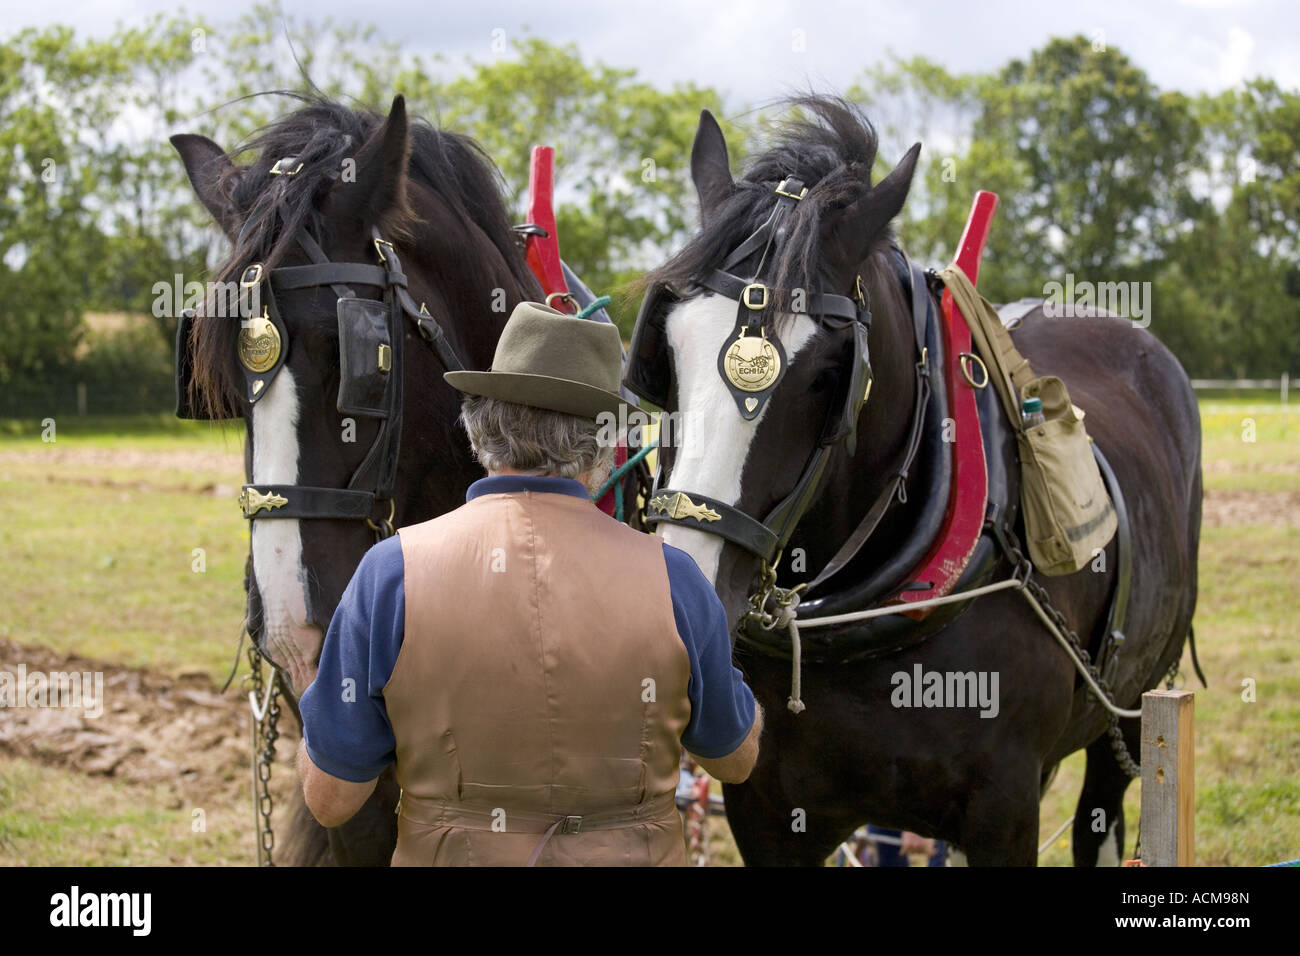 a pair of Shire Horses & Groom at countryside ploughing match - Stock Image